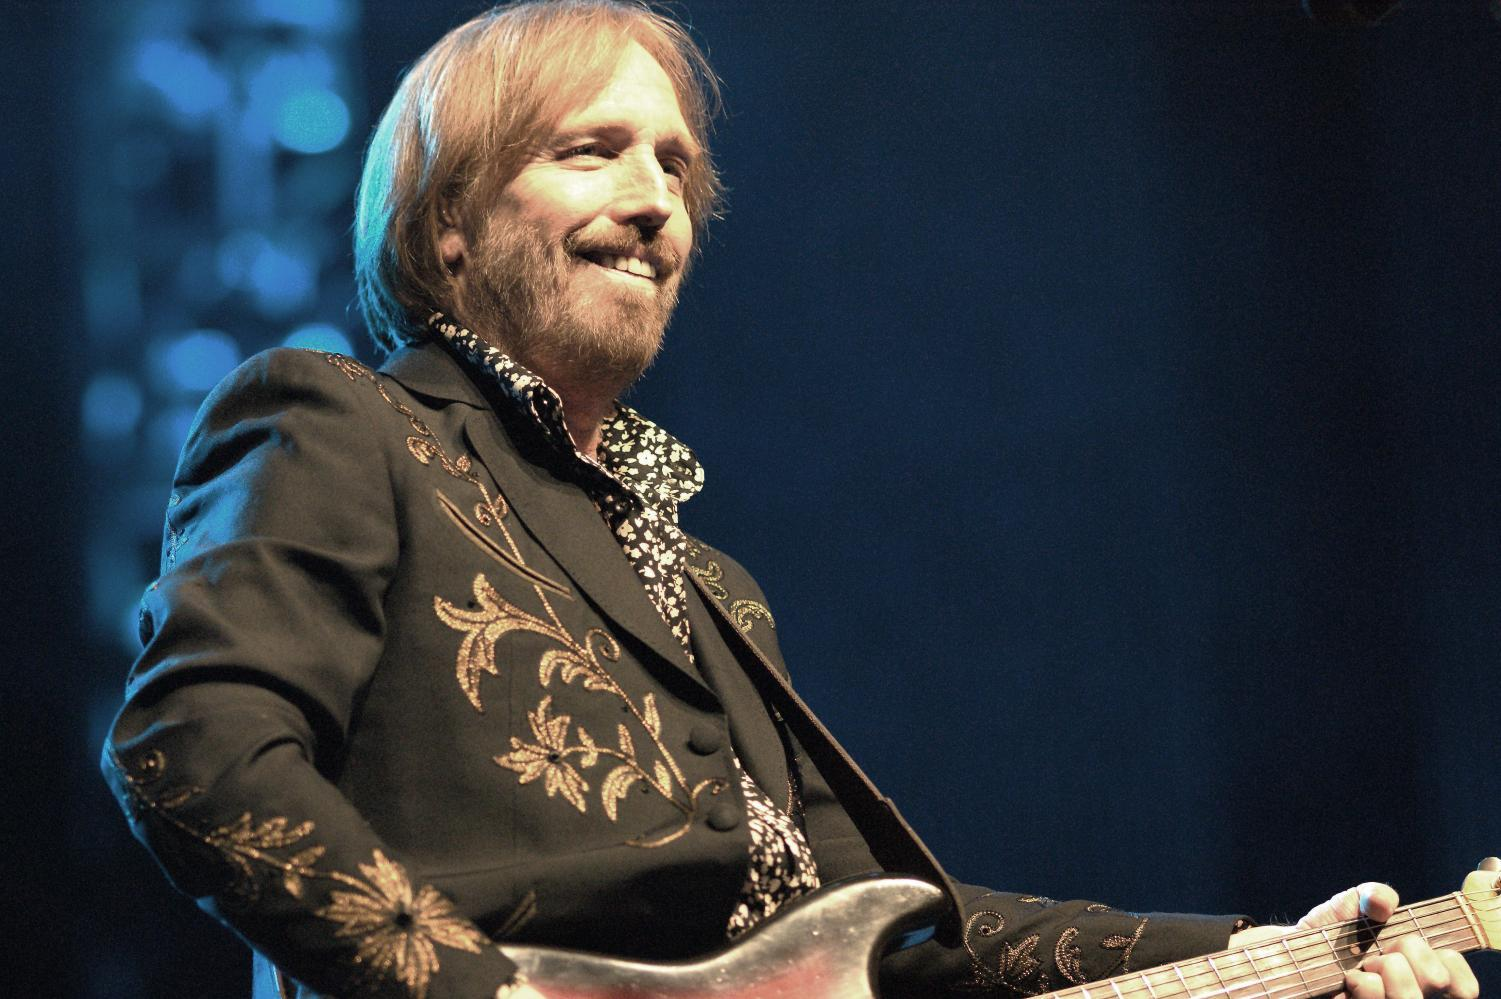 Tom Petty in concert, photo by musicisentropy, Flickr.com